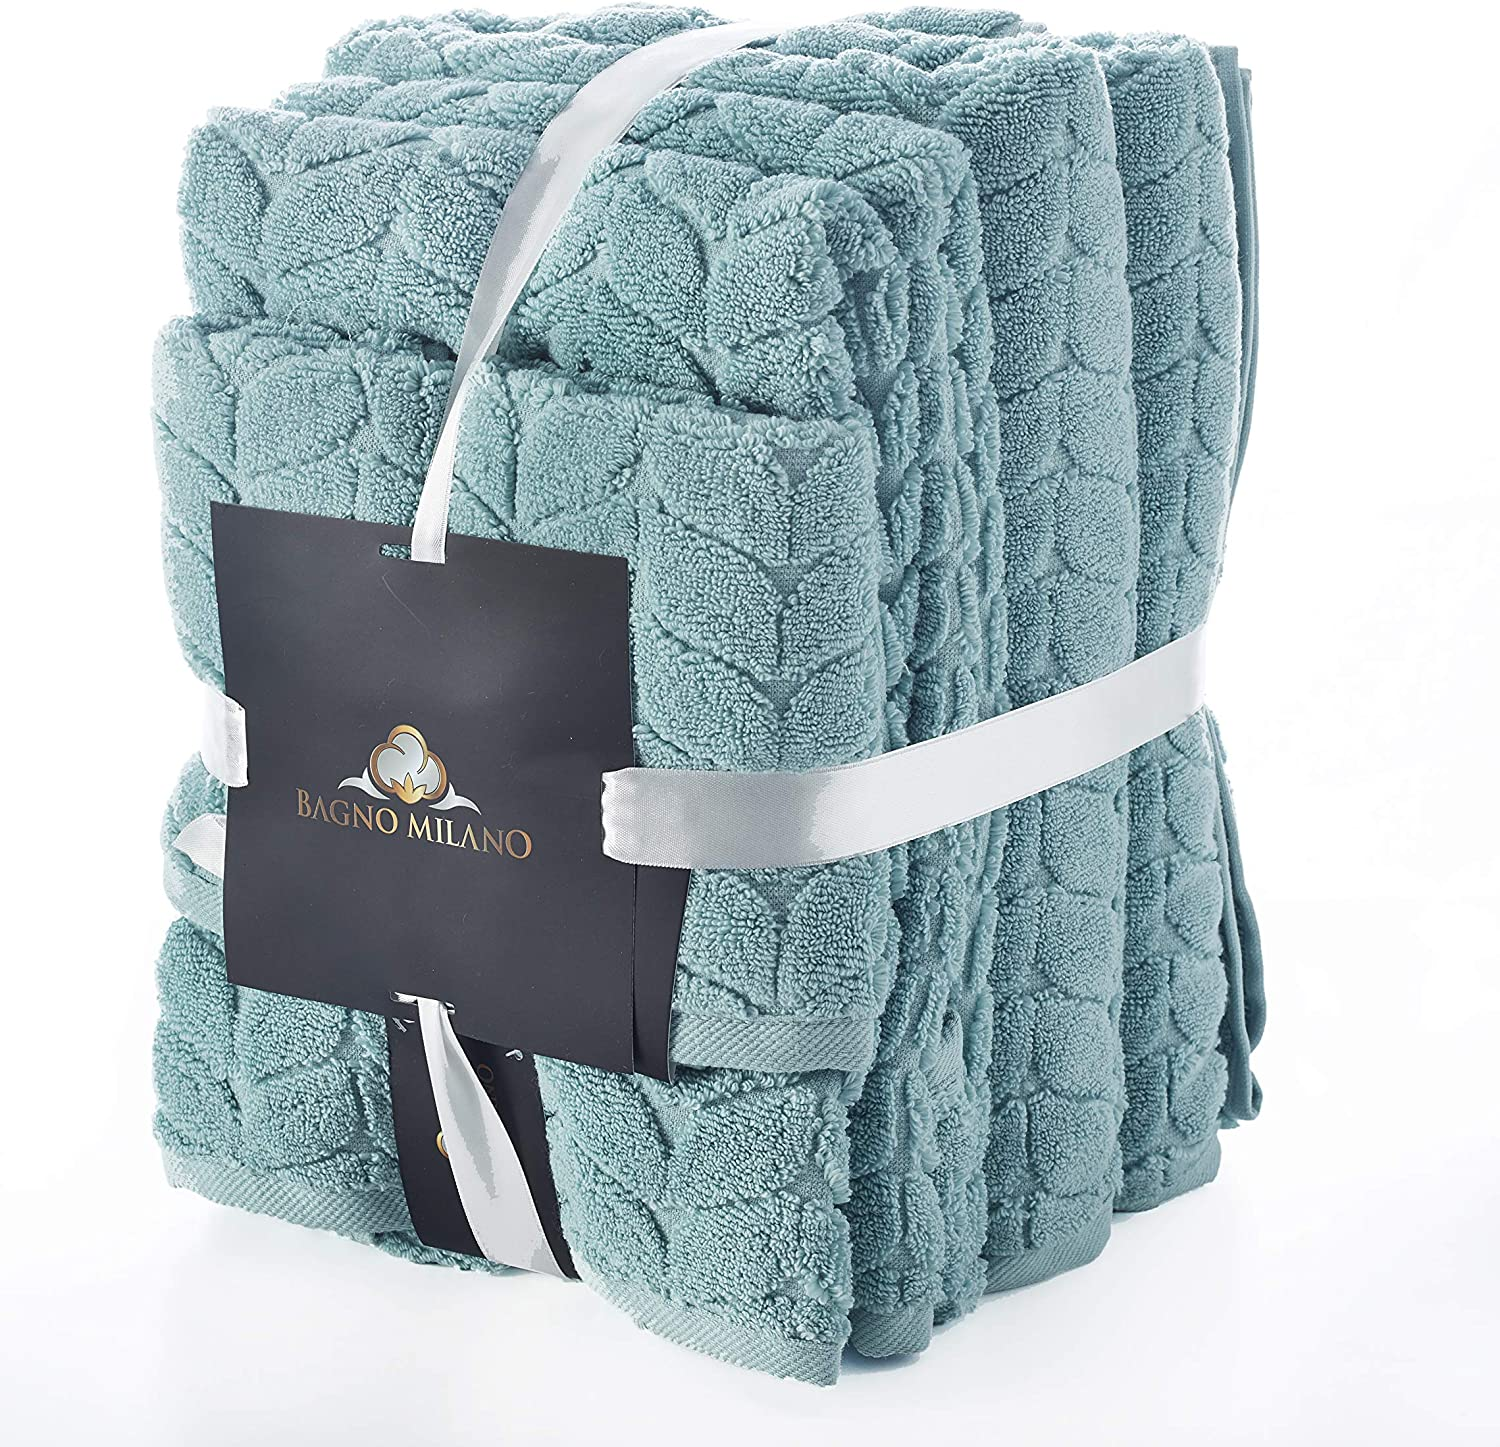 Bagno Milano Turkish Cotton Luxury Softness Spa Hotel Towels, Quick Drying Thick and Plush Bathroom Towels, Made in Turkey (Mint, 6 Pcs Towel Set)